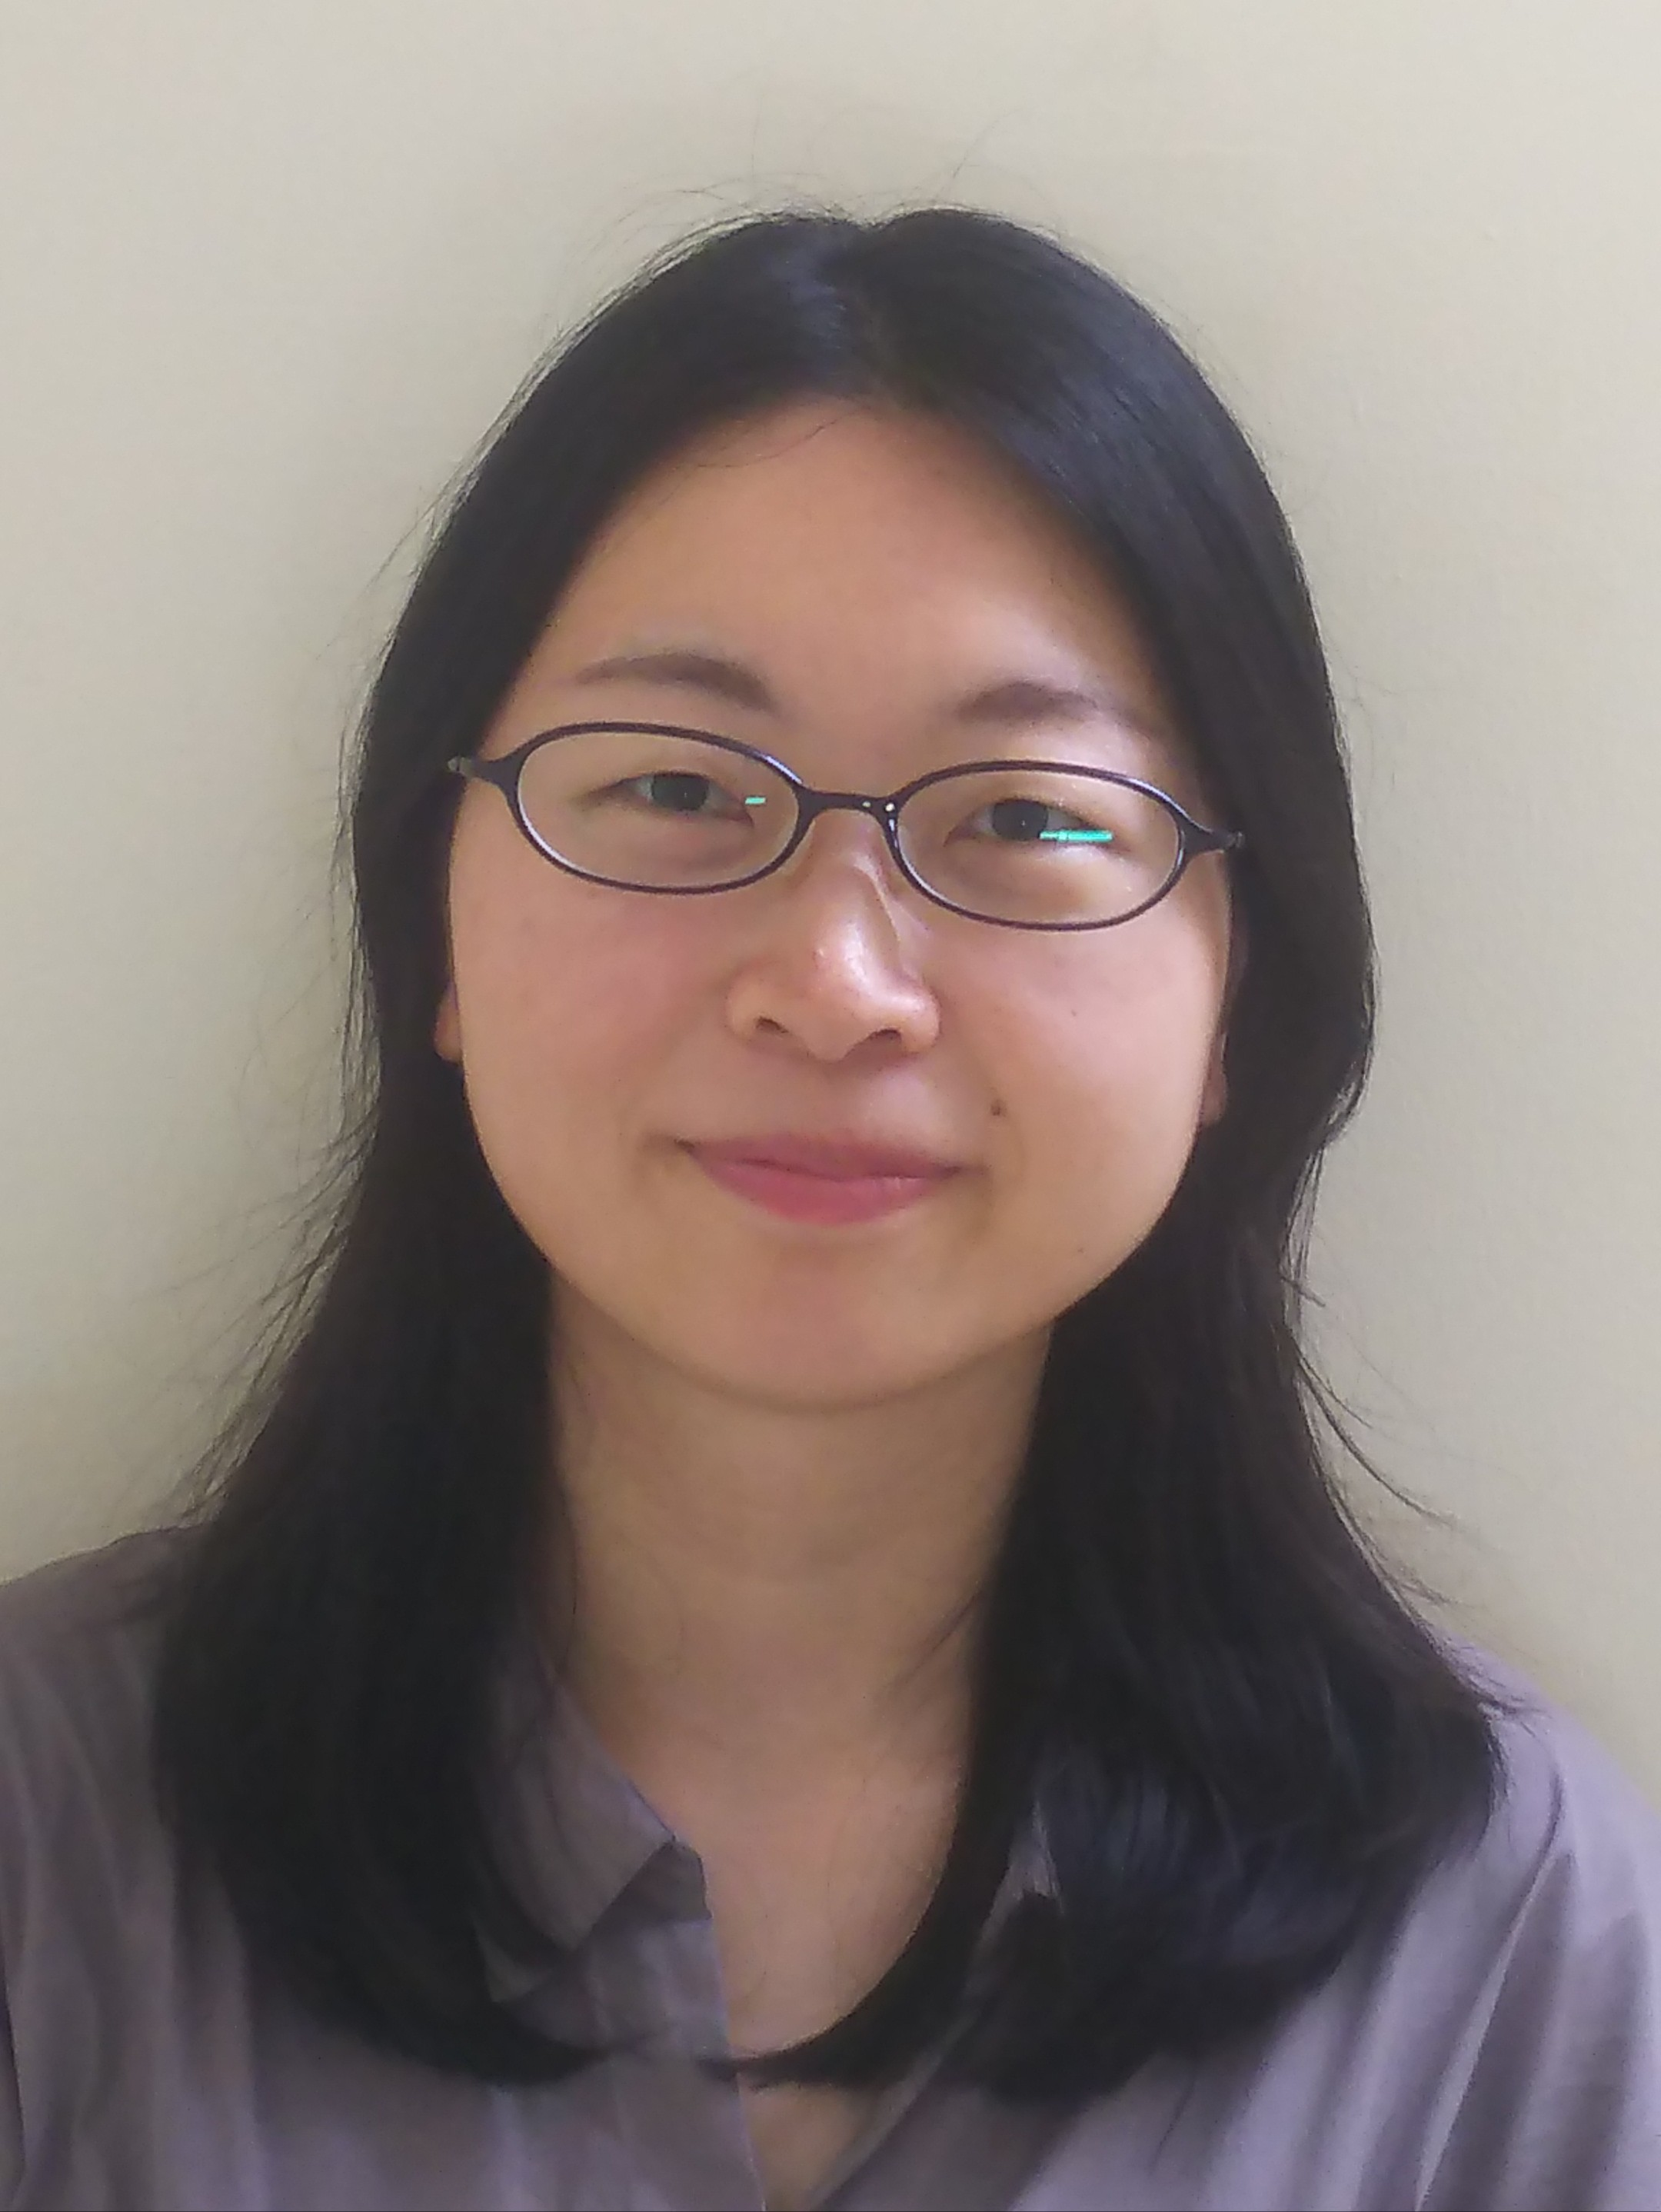 Speaker for Chemical Engineering Conferences 2019 - Haruka Aihara